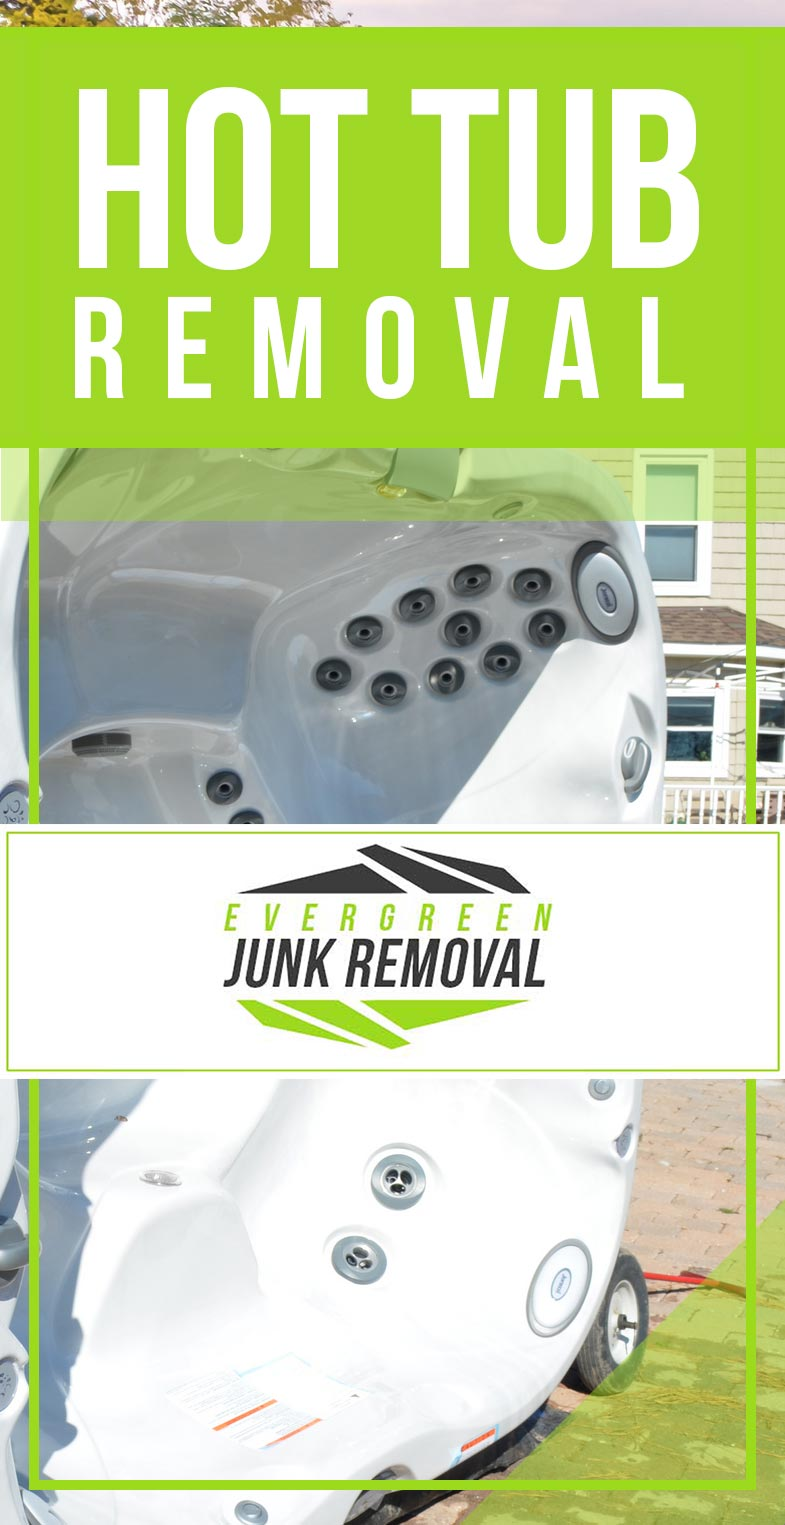 North-Bay-Village-Hot-Tub-Removal